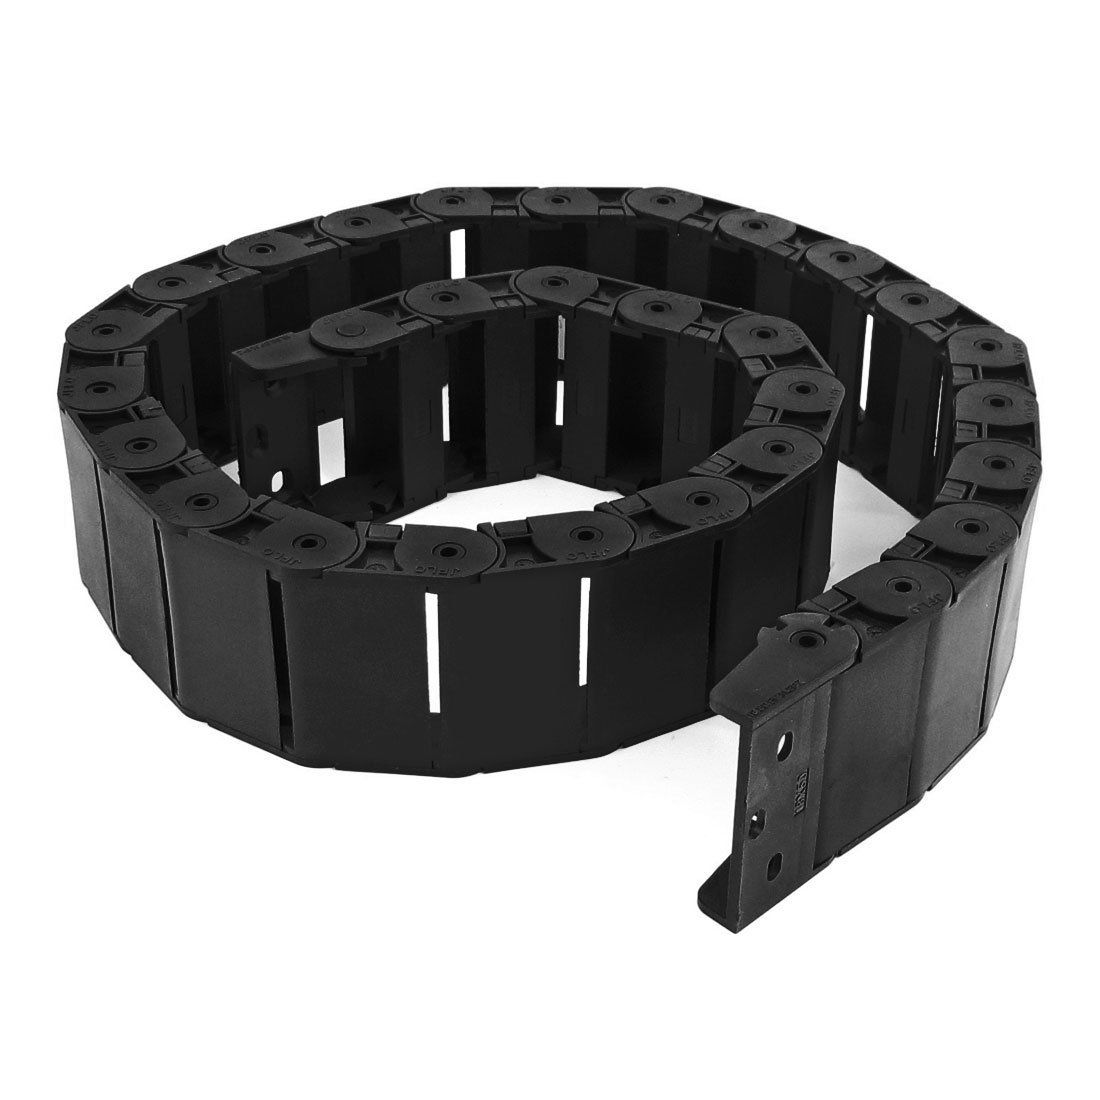 DSHA New Hot 40.55 Black Cable Wire Carrier Drag Chain Nested 18x50mm